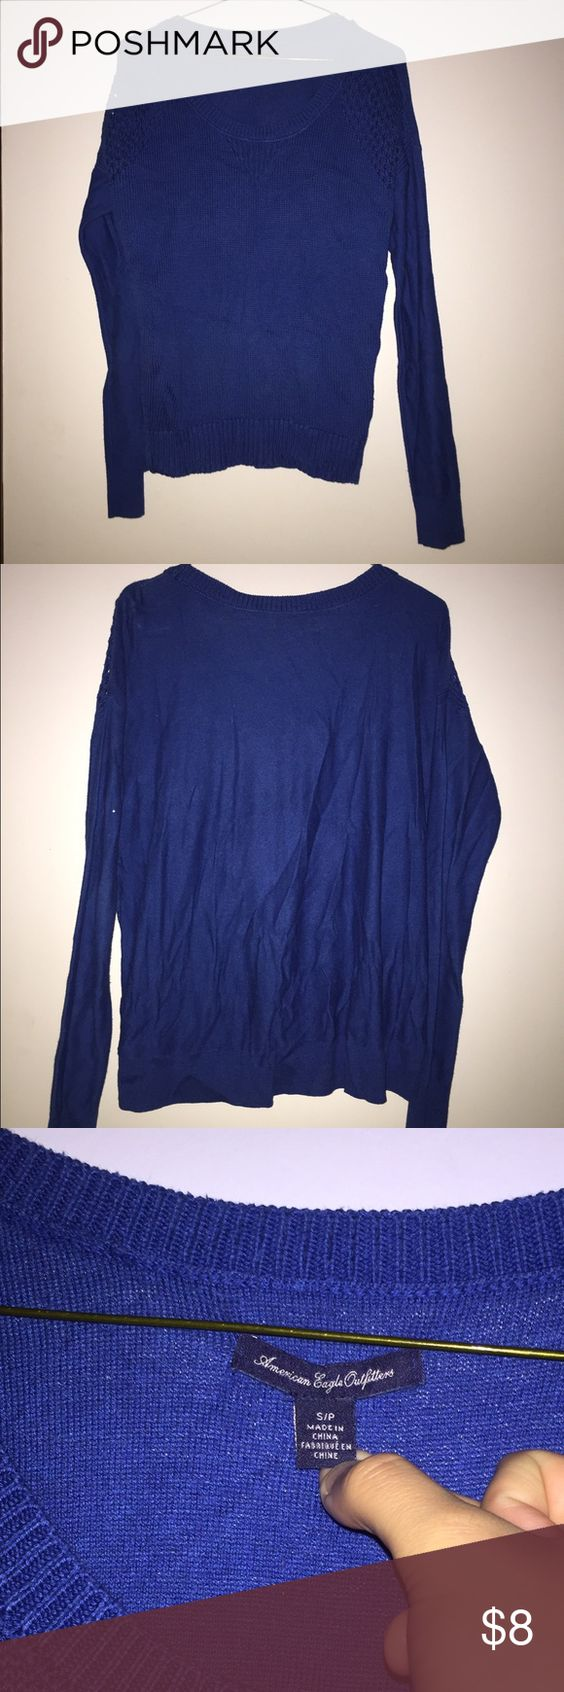 American Eagle Blue Sweater Size Small Blue AE sweater, size small. Shoulders have a design so theres spaces between stitches so they're see through. Can post model photos upon request. Barely worn, in perfect condition. Not tight fitting but not loose either. American Eagle Outfitters Sweaters Crew & Scoop Necks